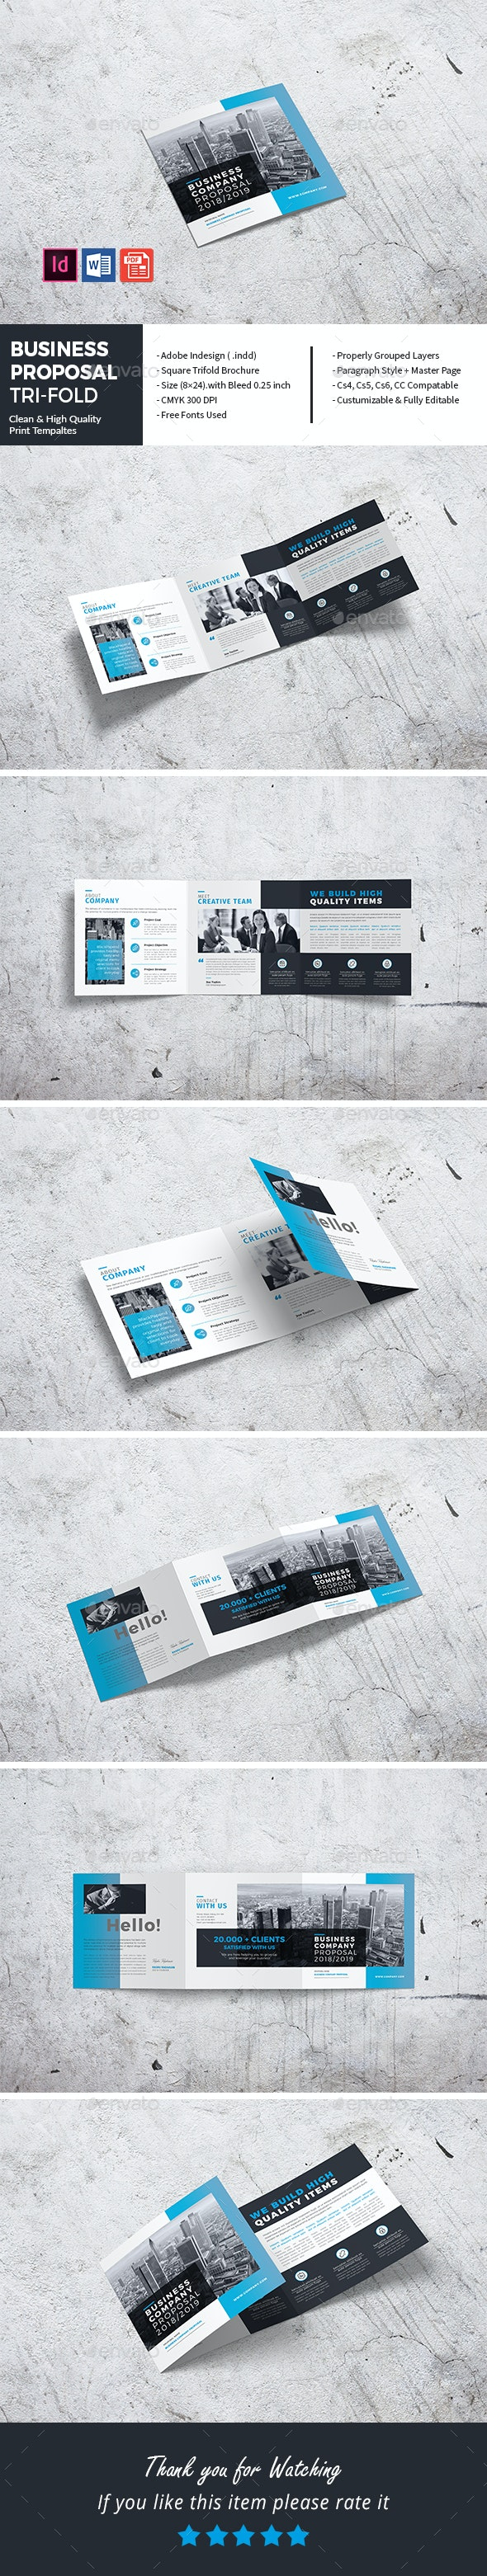 Square Business Company Proposal Tri-Fold - Corporate Brochures